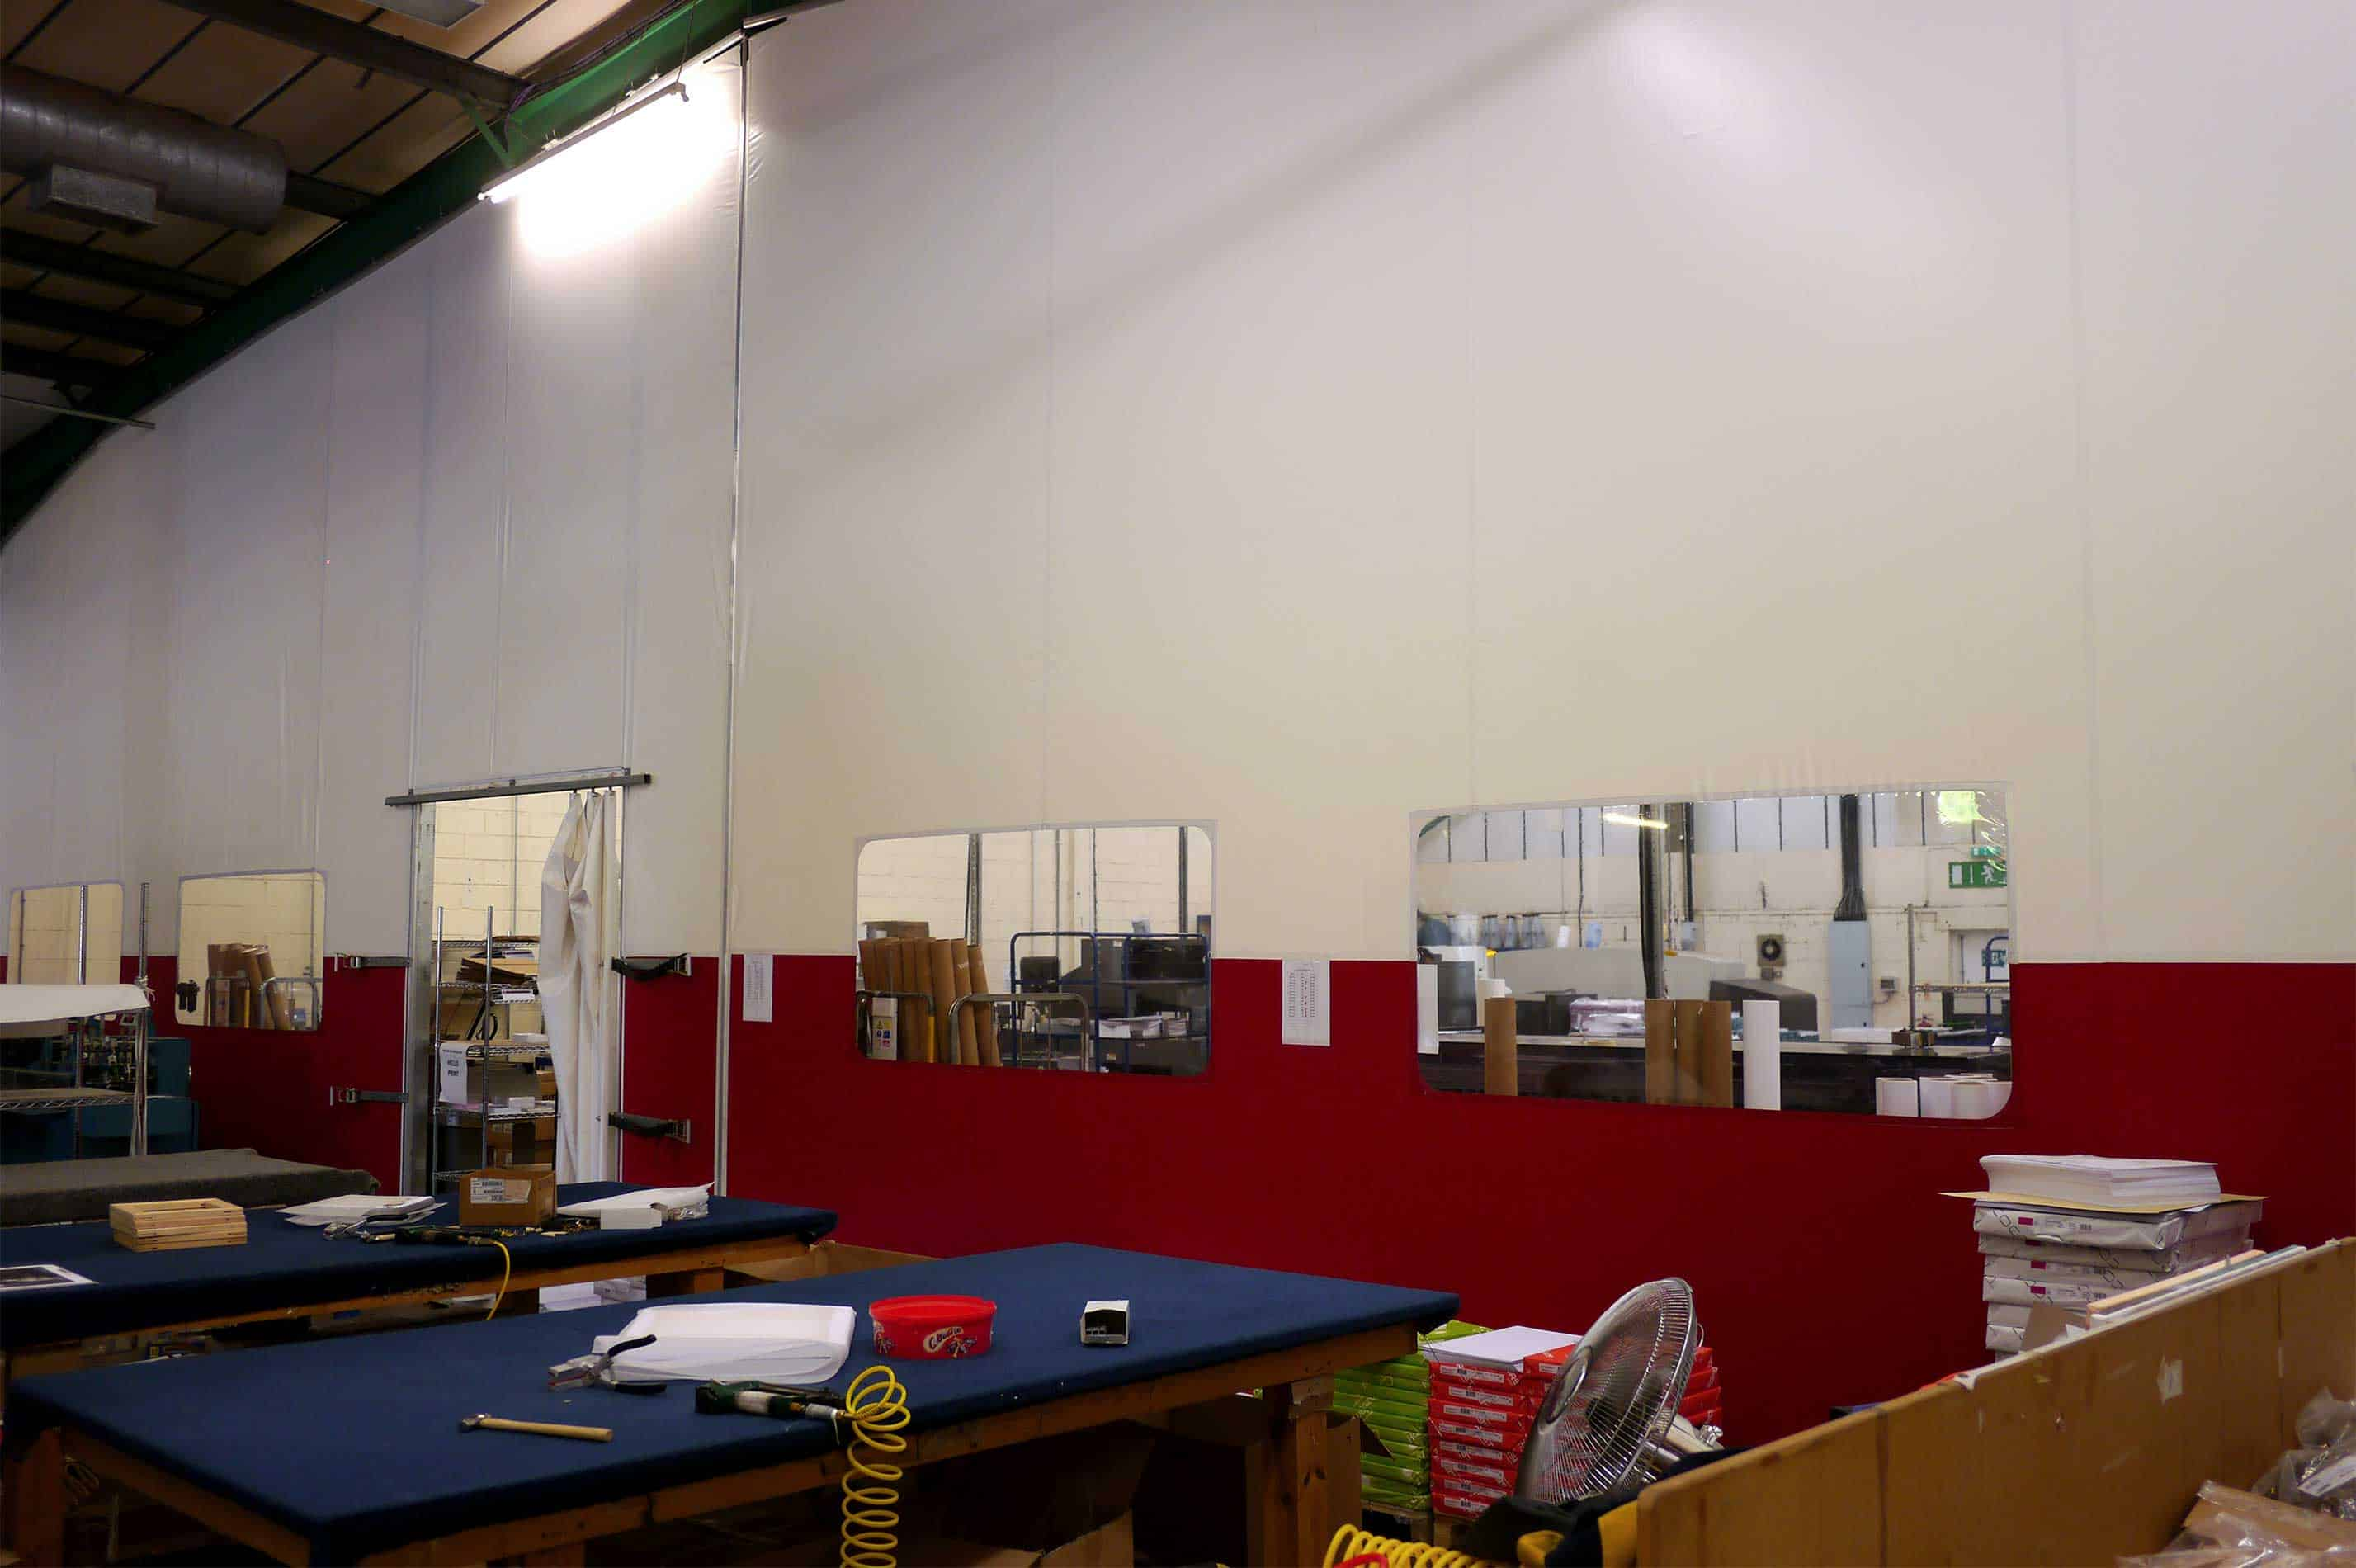 Flexible fabric partition with window cut-outs and personnel doors by McGregor Fabric Structures